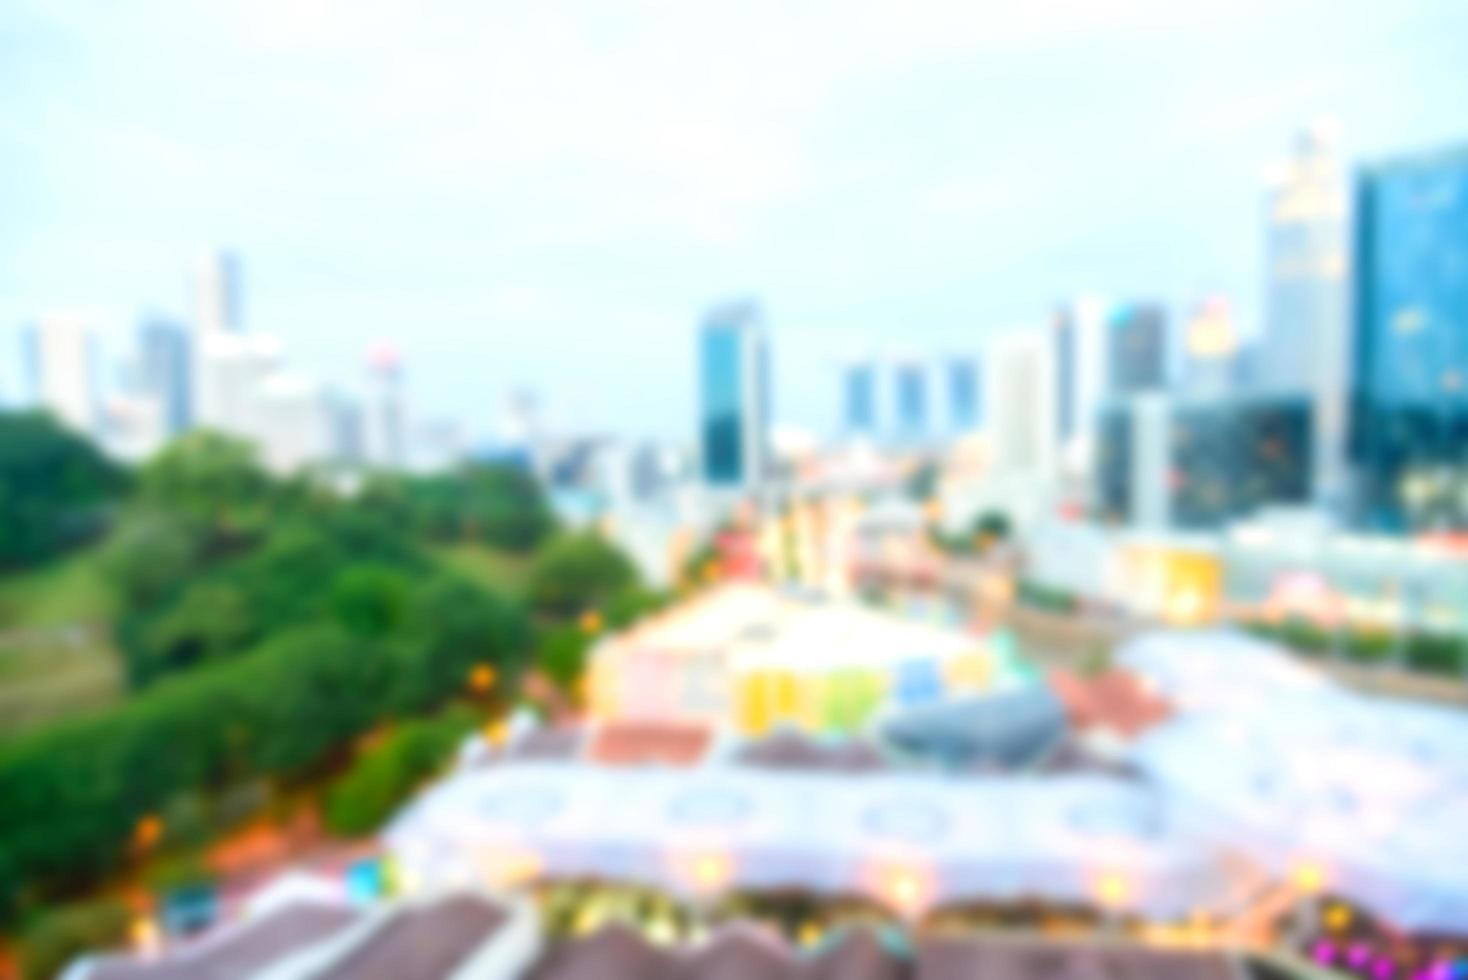 abstract intreepupil Singapore stad achtergrond foto